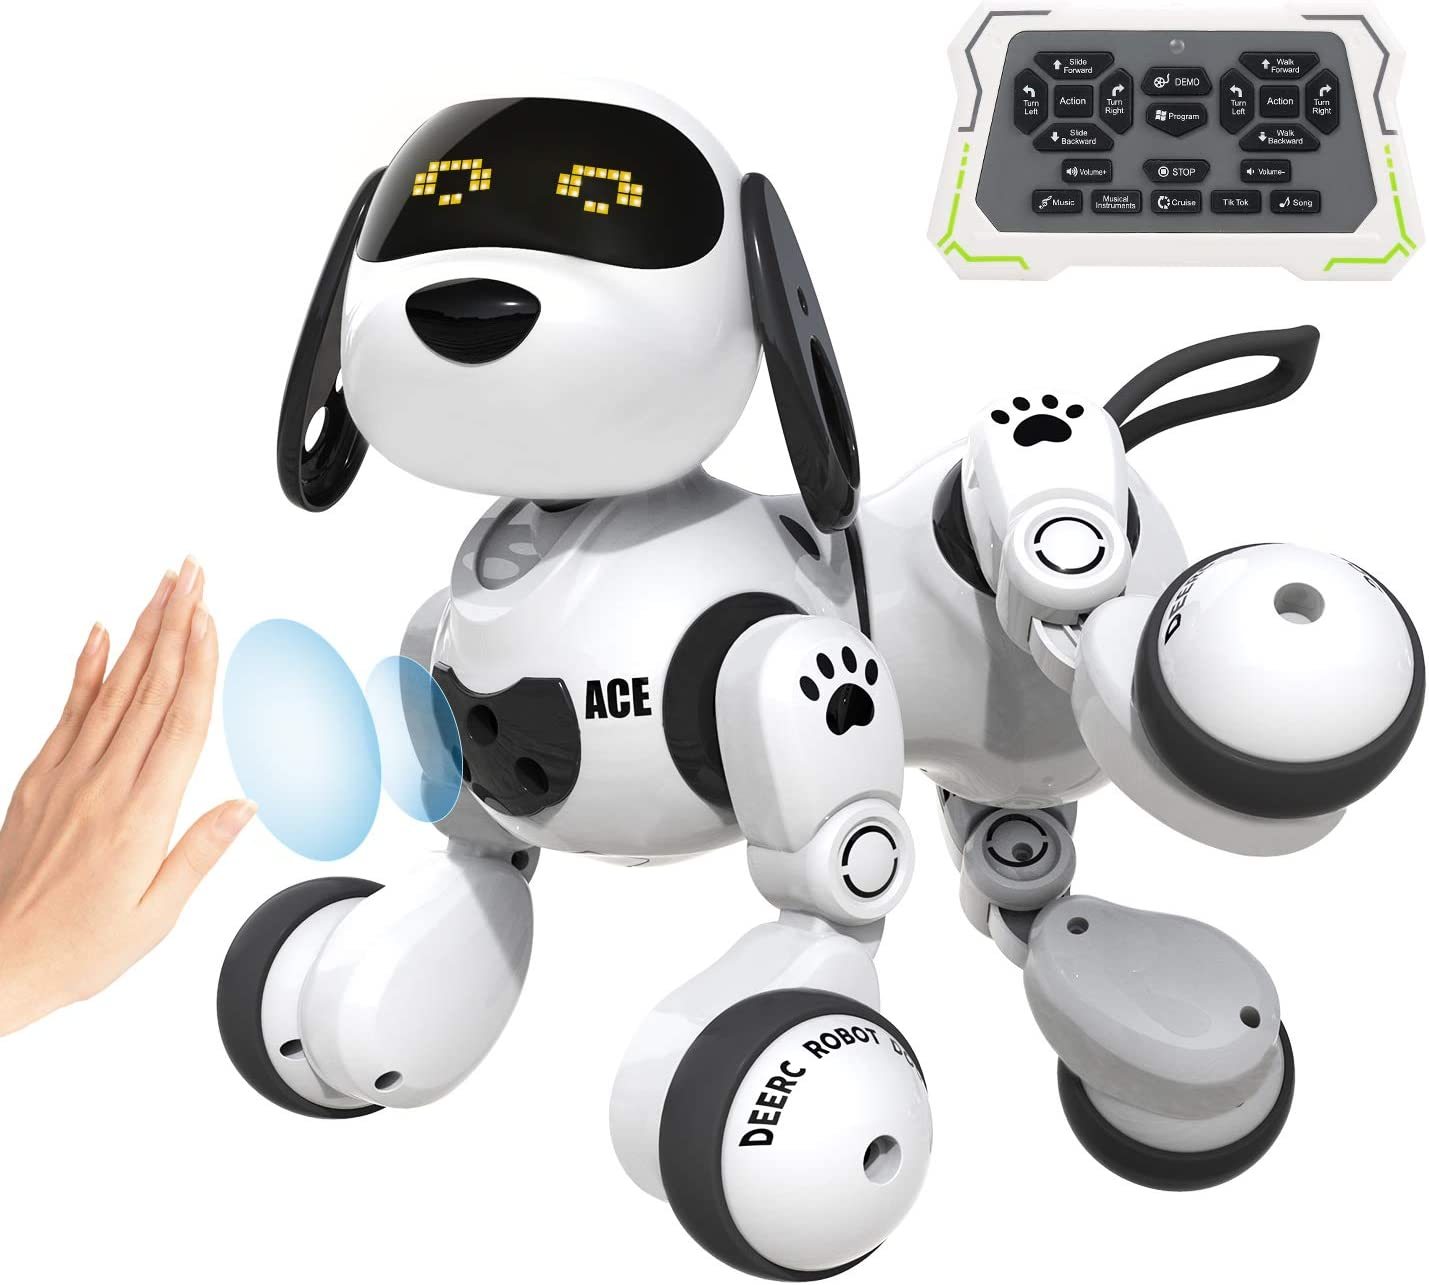 DEERC Robot Toys for Kids Remote Control Programmable Robot Dog Smart RC Robot with Gesture Sensing,Robotic Kit with LED Eyes,Walking,Talking,Singing,Dancing,Interactive Gift for Boys and Girls